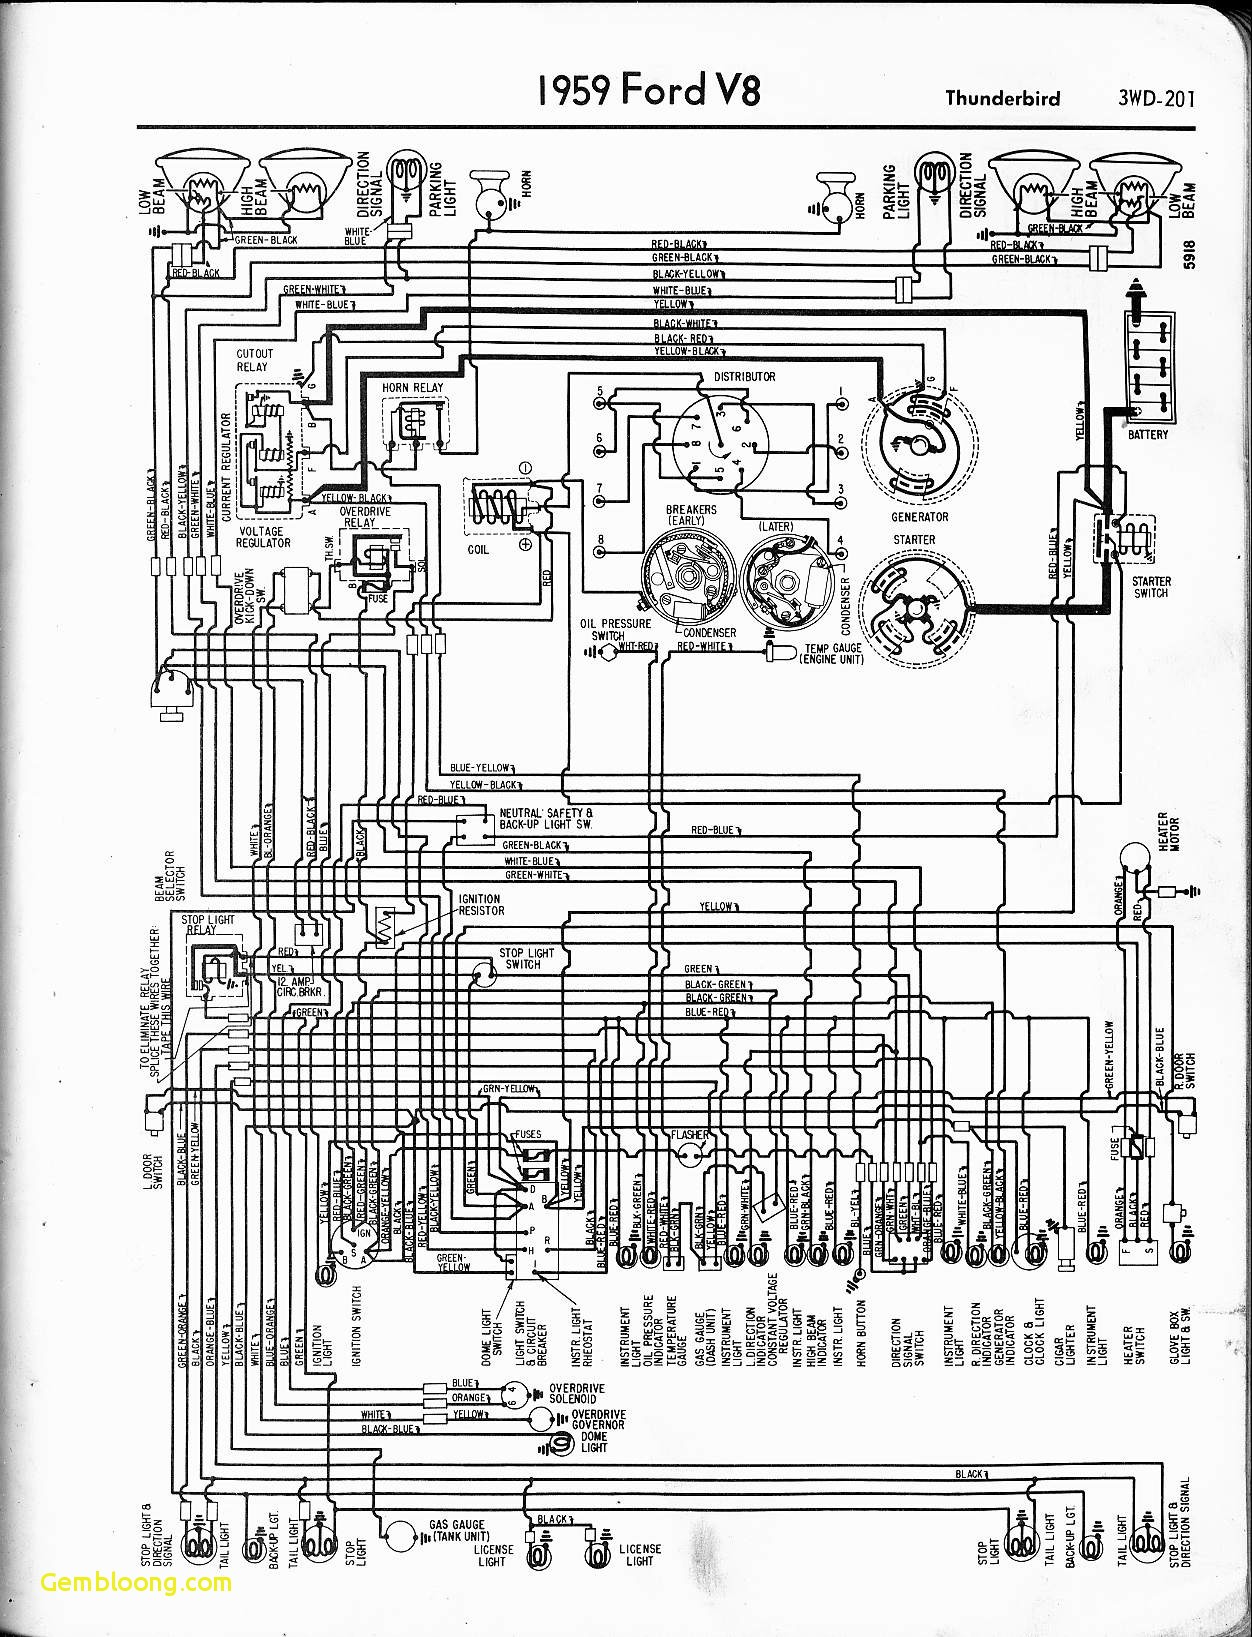 Free Wiring Diagrams for Dodge Trucks Truck Wiring Diagrams Free Of Free Wiring Diagrams for Dodge Trucks Dodge Truck Stereo Wiring Diagram